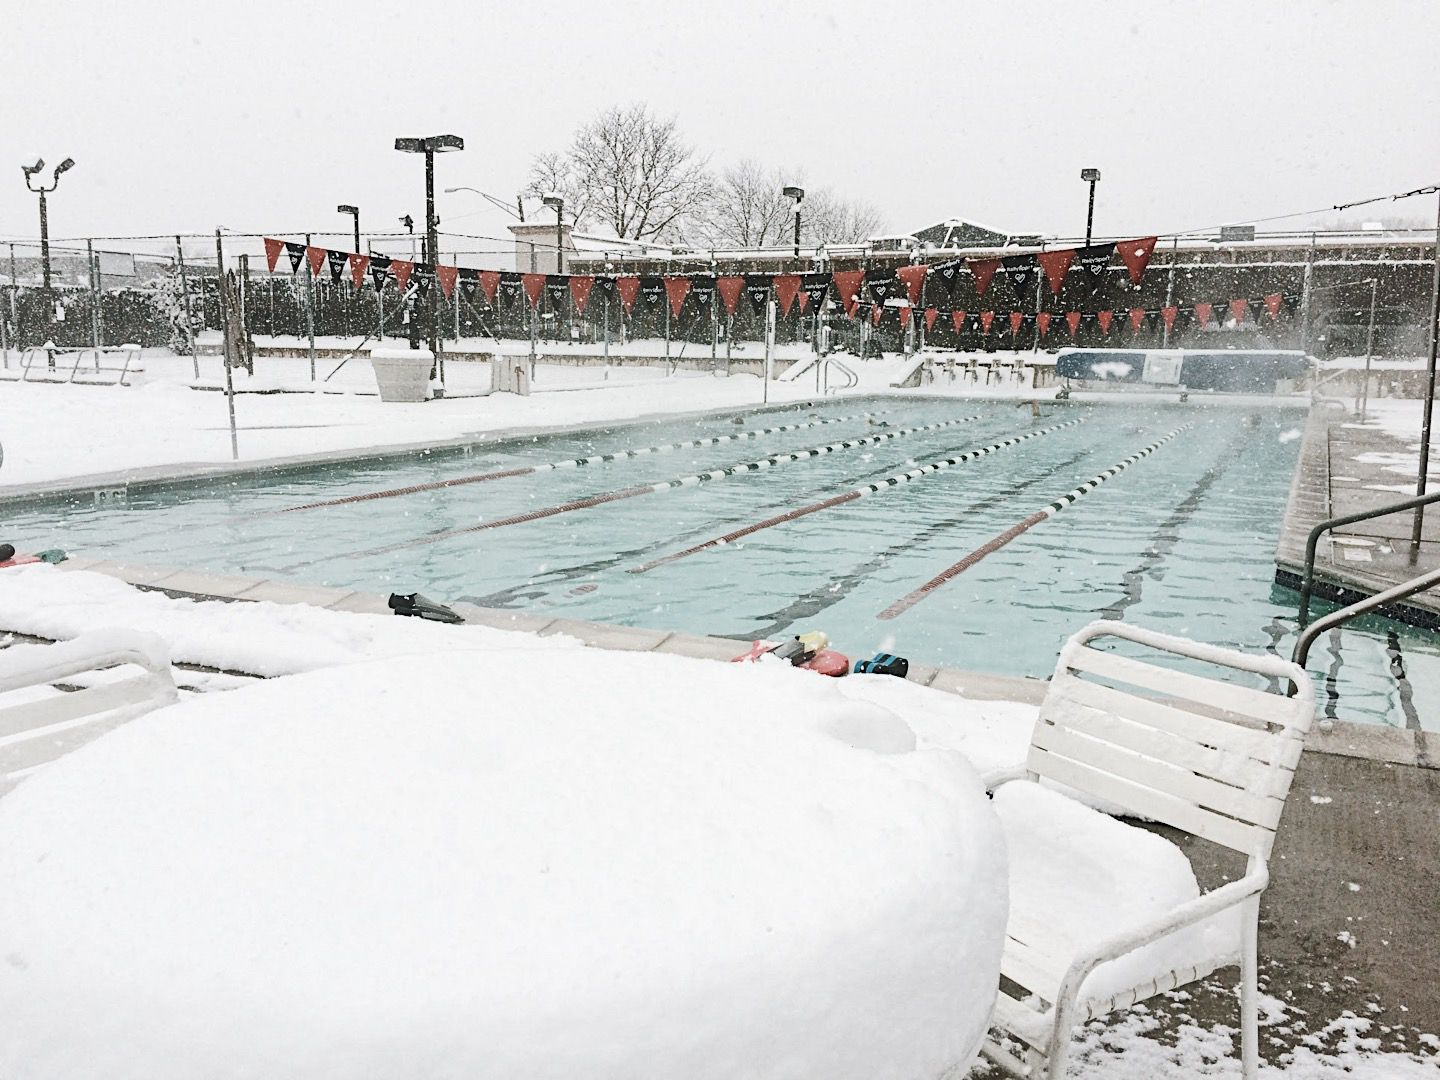 Nothing says 'tis the season like a snowy dip in the best